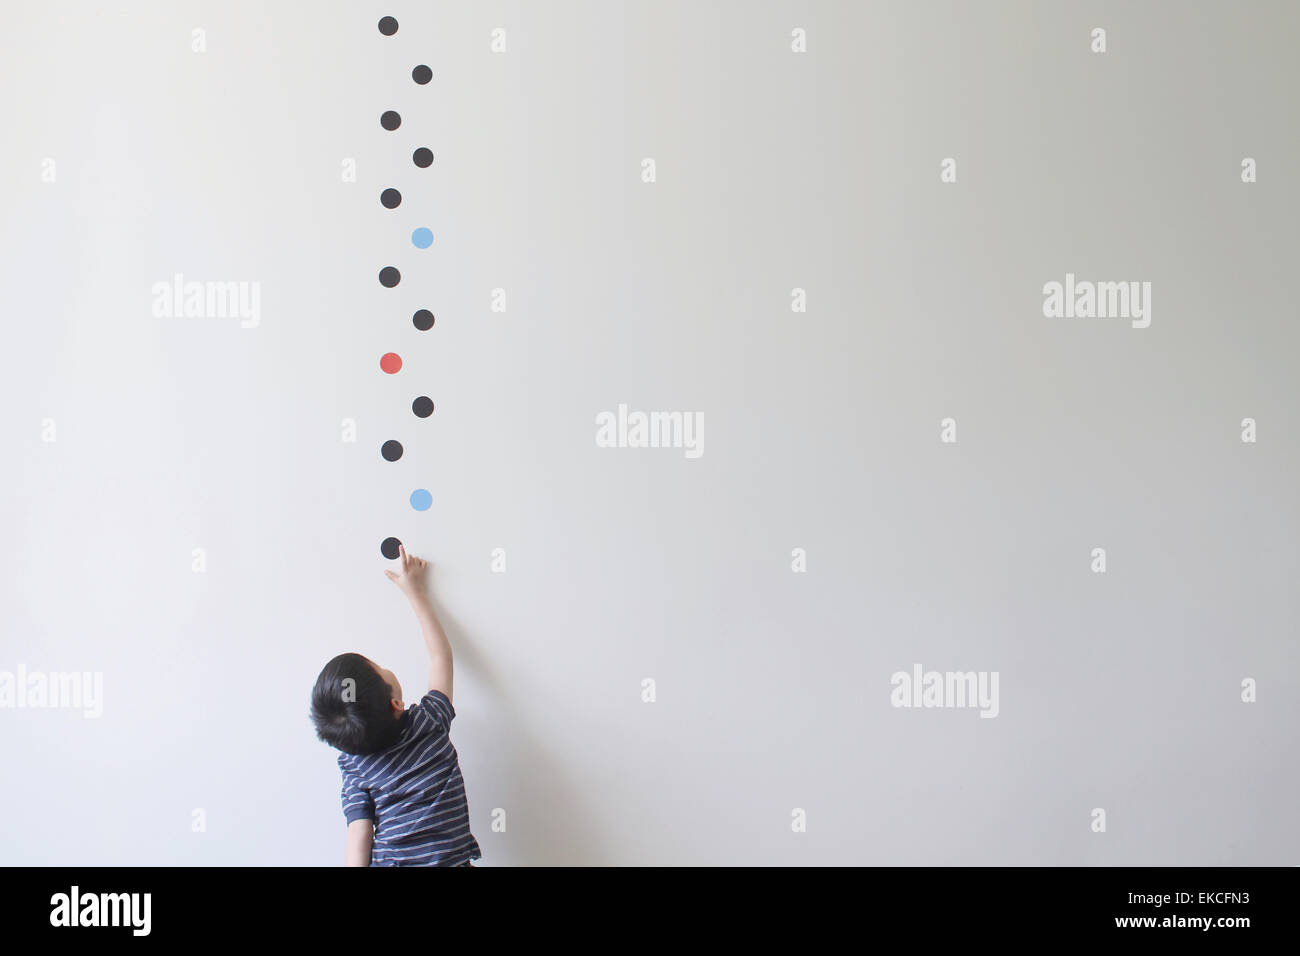 Boy trying to pick one of the dot patterns off the wall Stock Photo